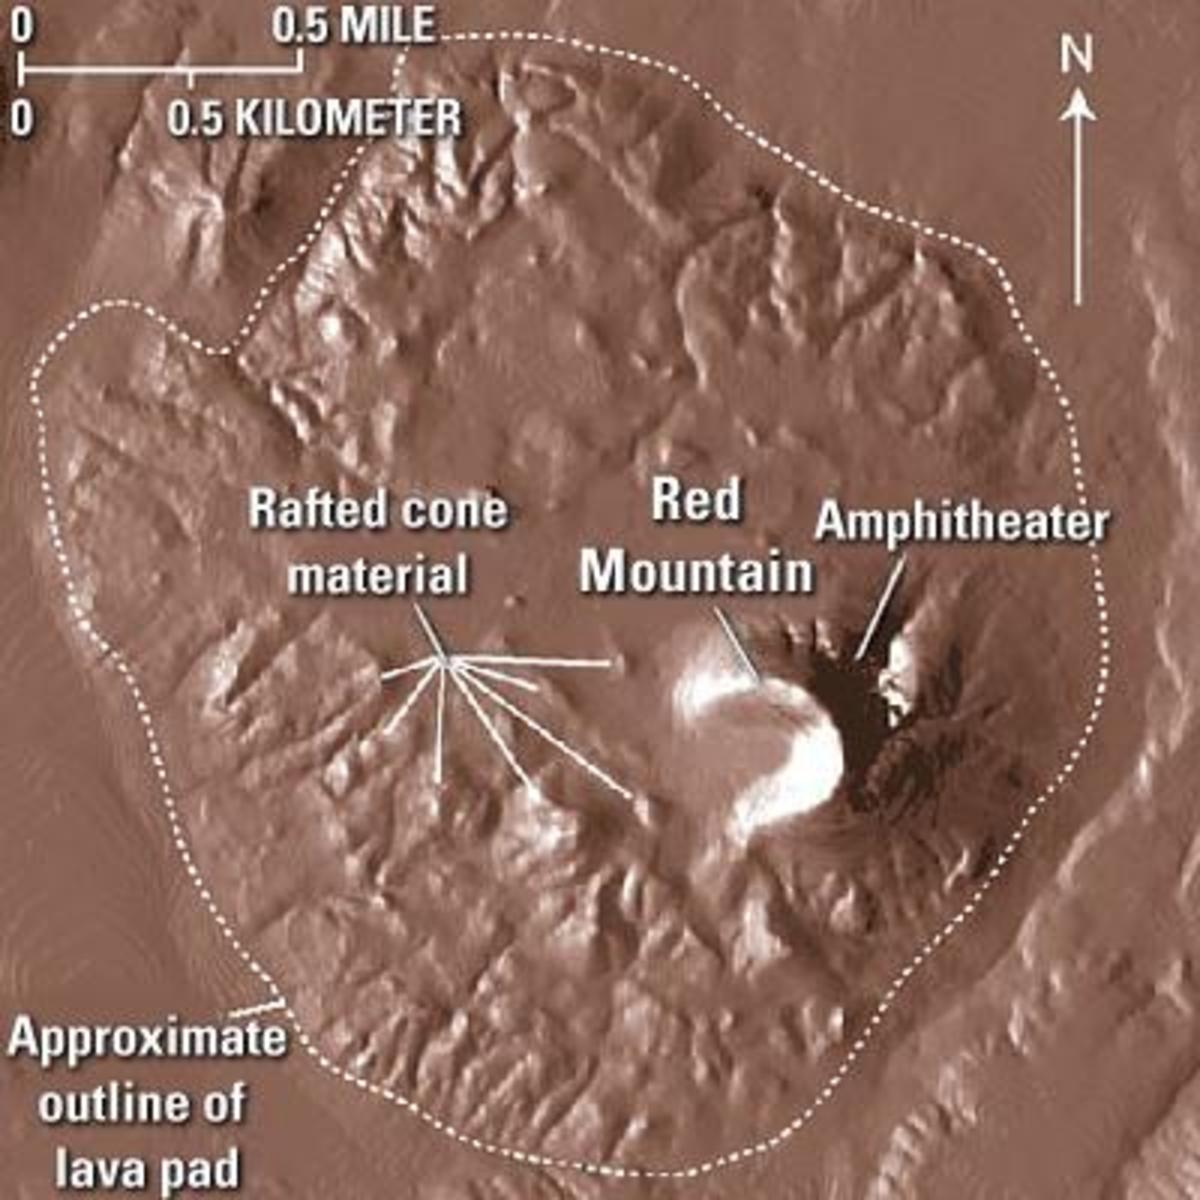 Red Mountain Digital Elevation Model (DEM)